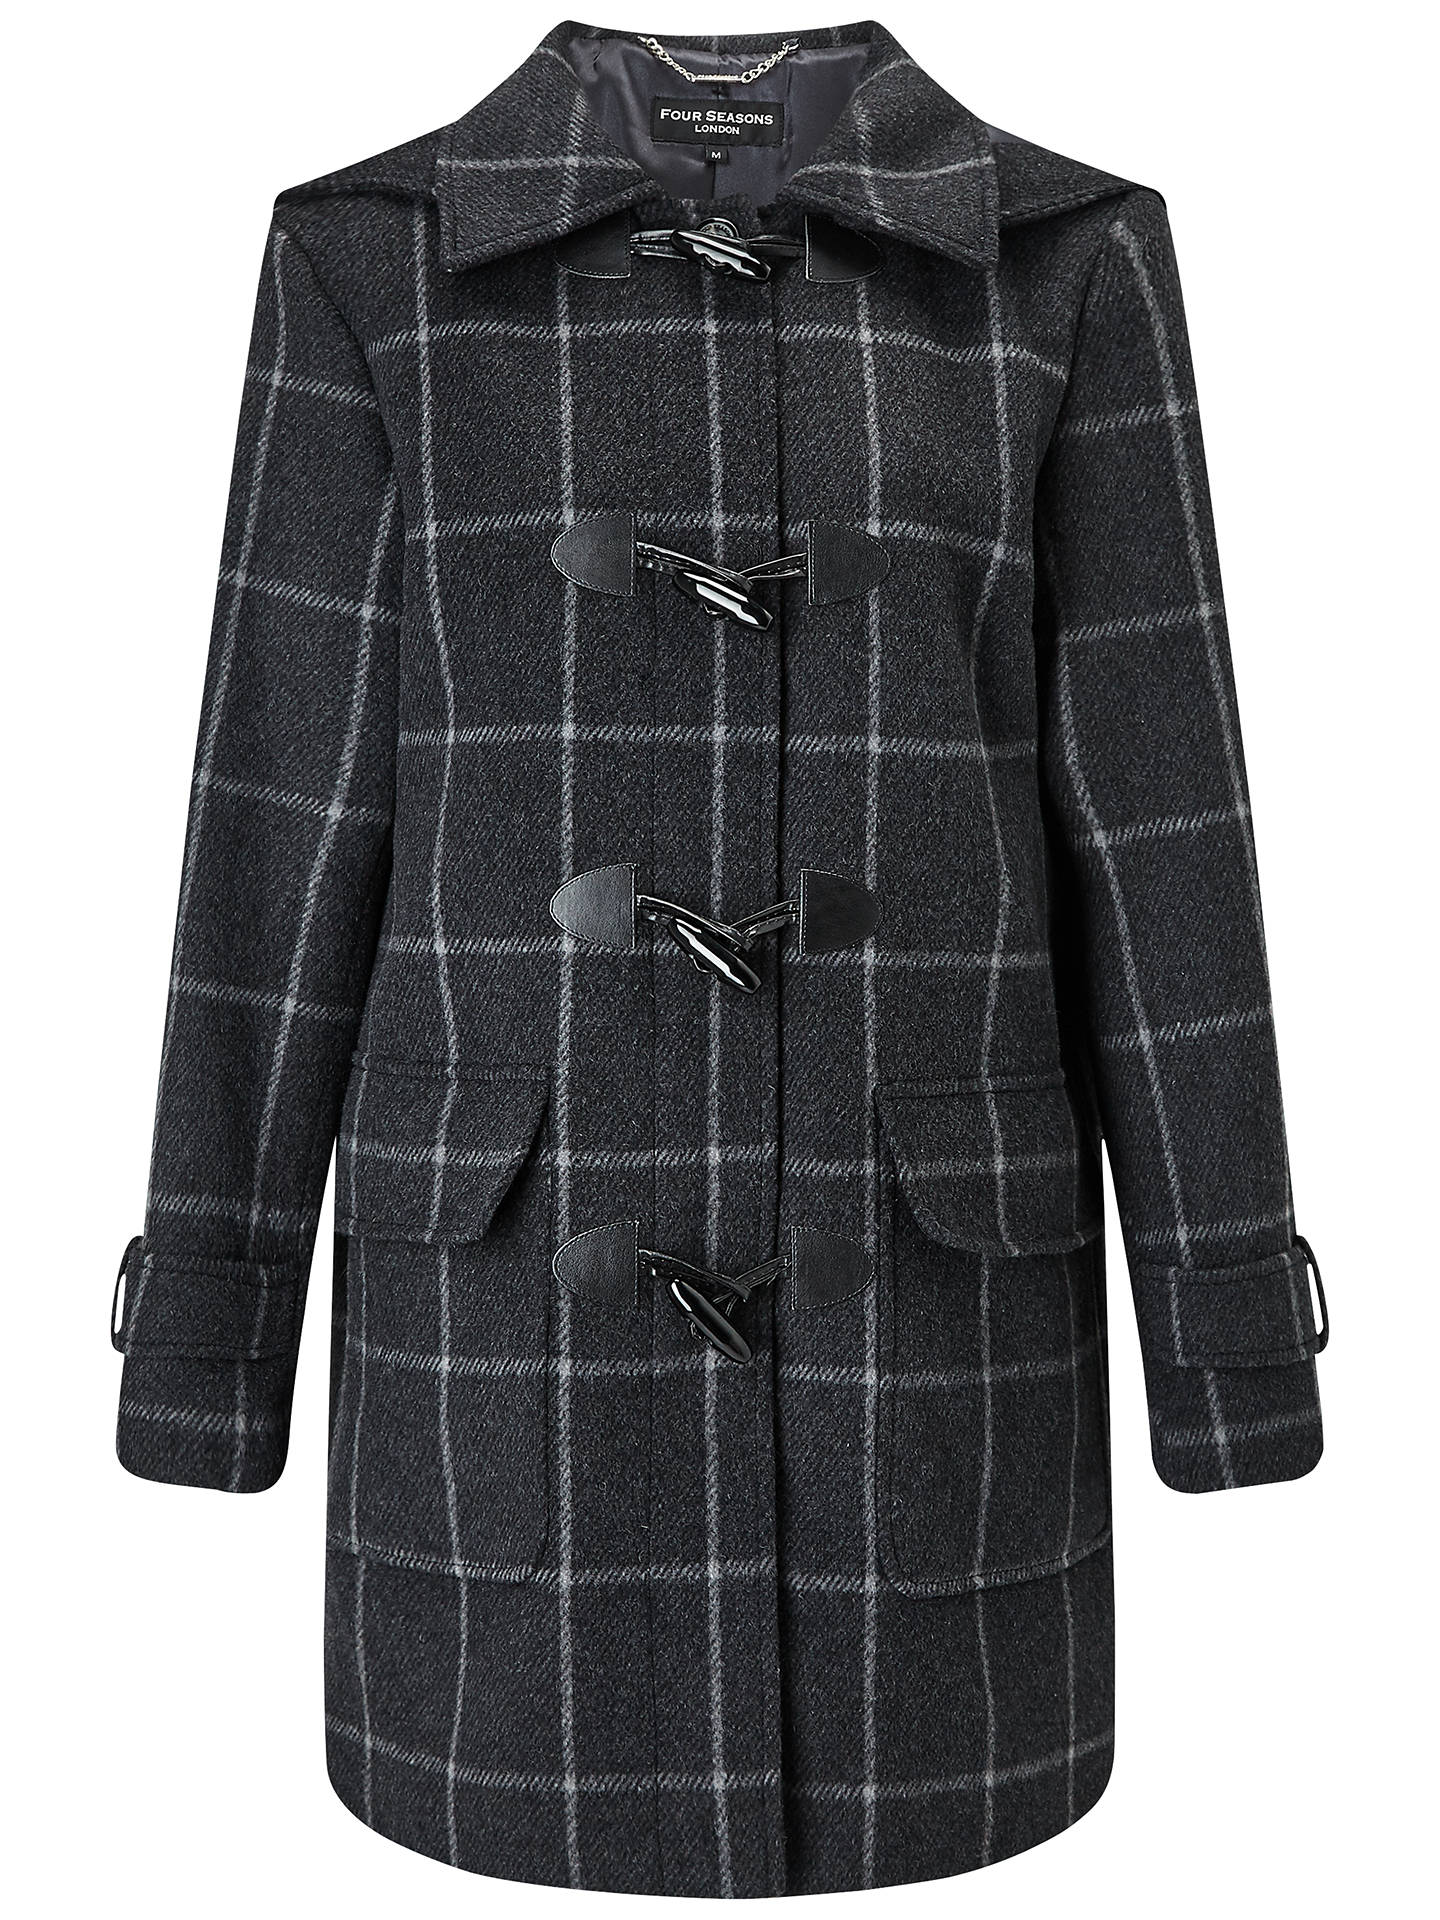 BuyFour Seasons Check Duffle Coat, Charcoal/Black, XS Online at johnlewis.com